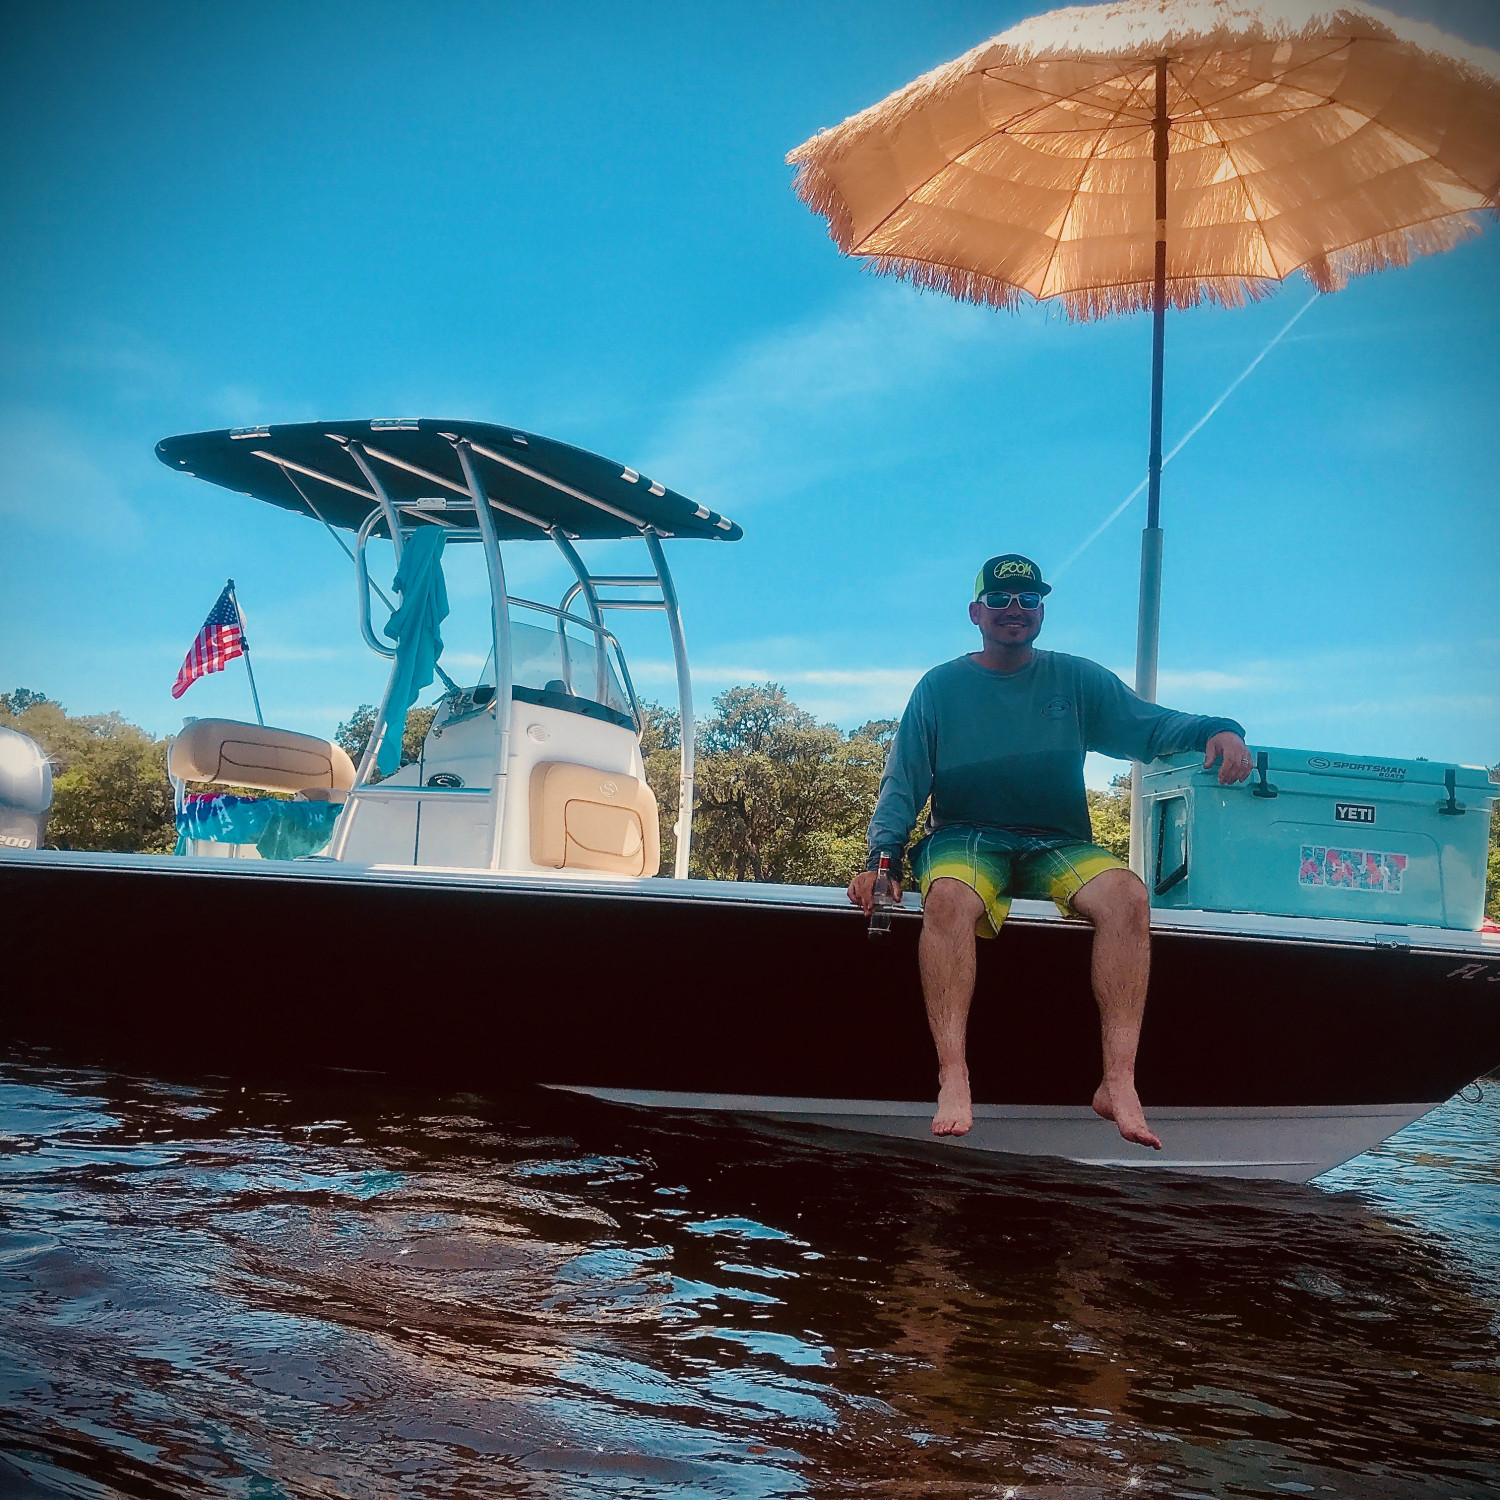 Title: My tiki on the river - On board their Sportsman Masters 227 Bay Boat - Location: Old Town Florida. Participating in the Photo Contest #SportsmanMay2018